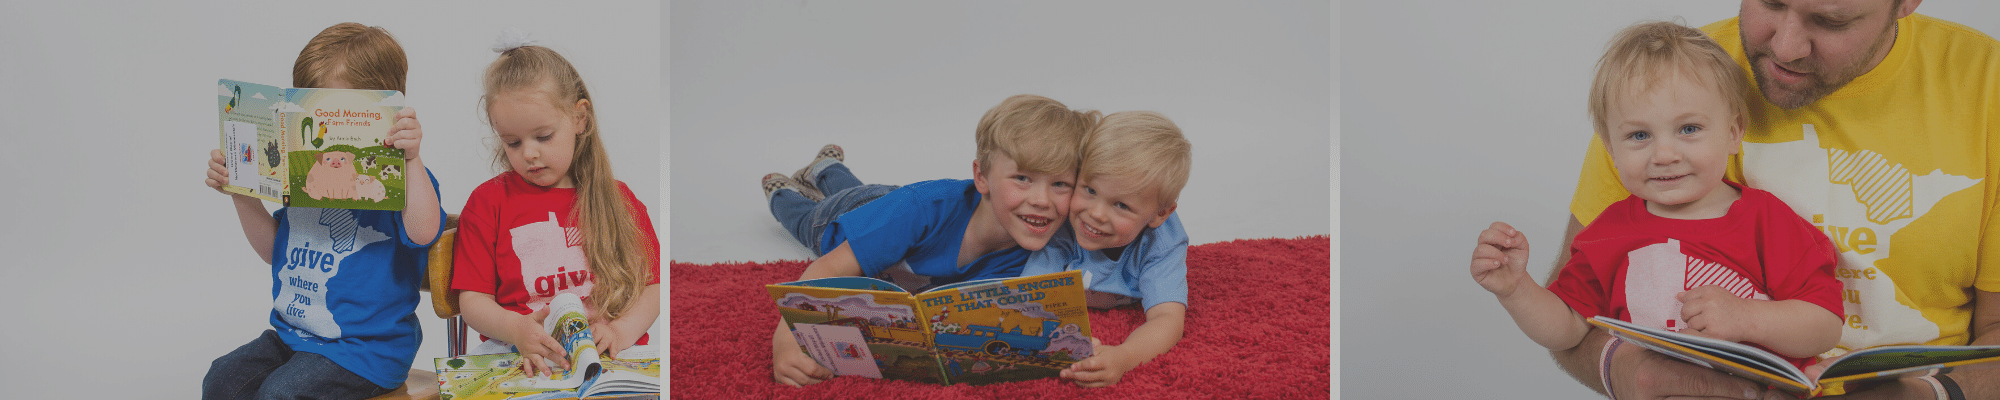 Children with Imagination Library books